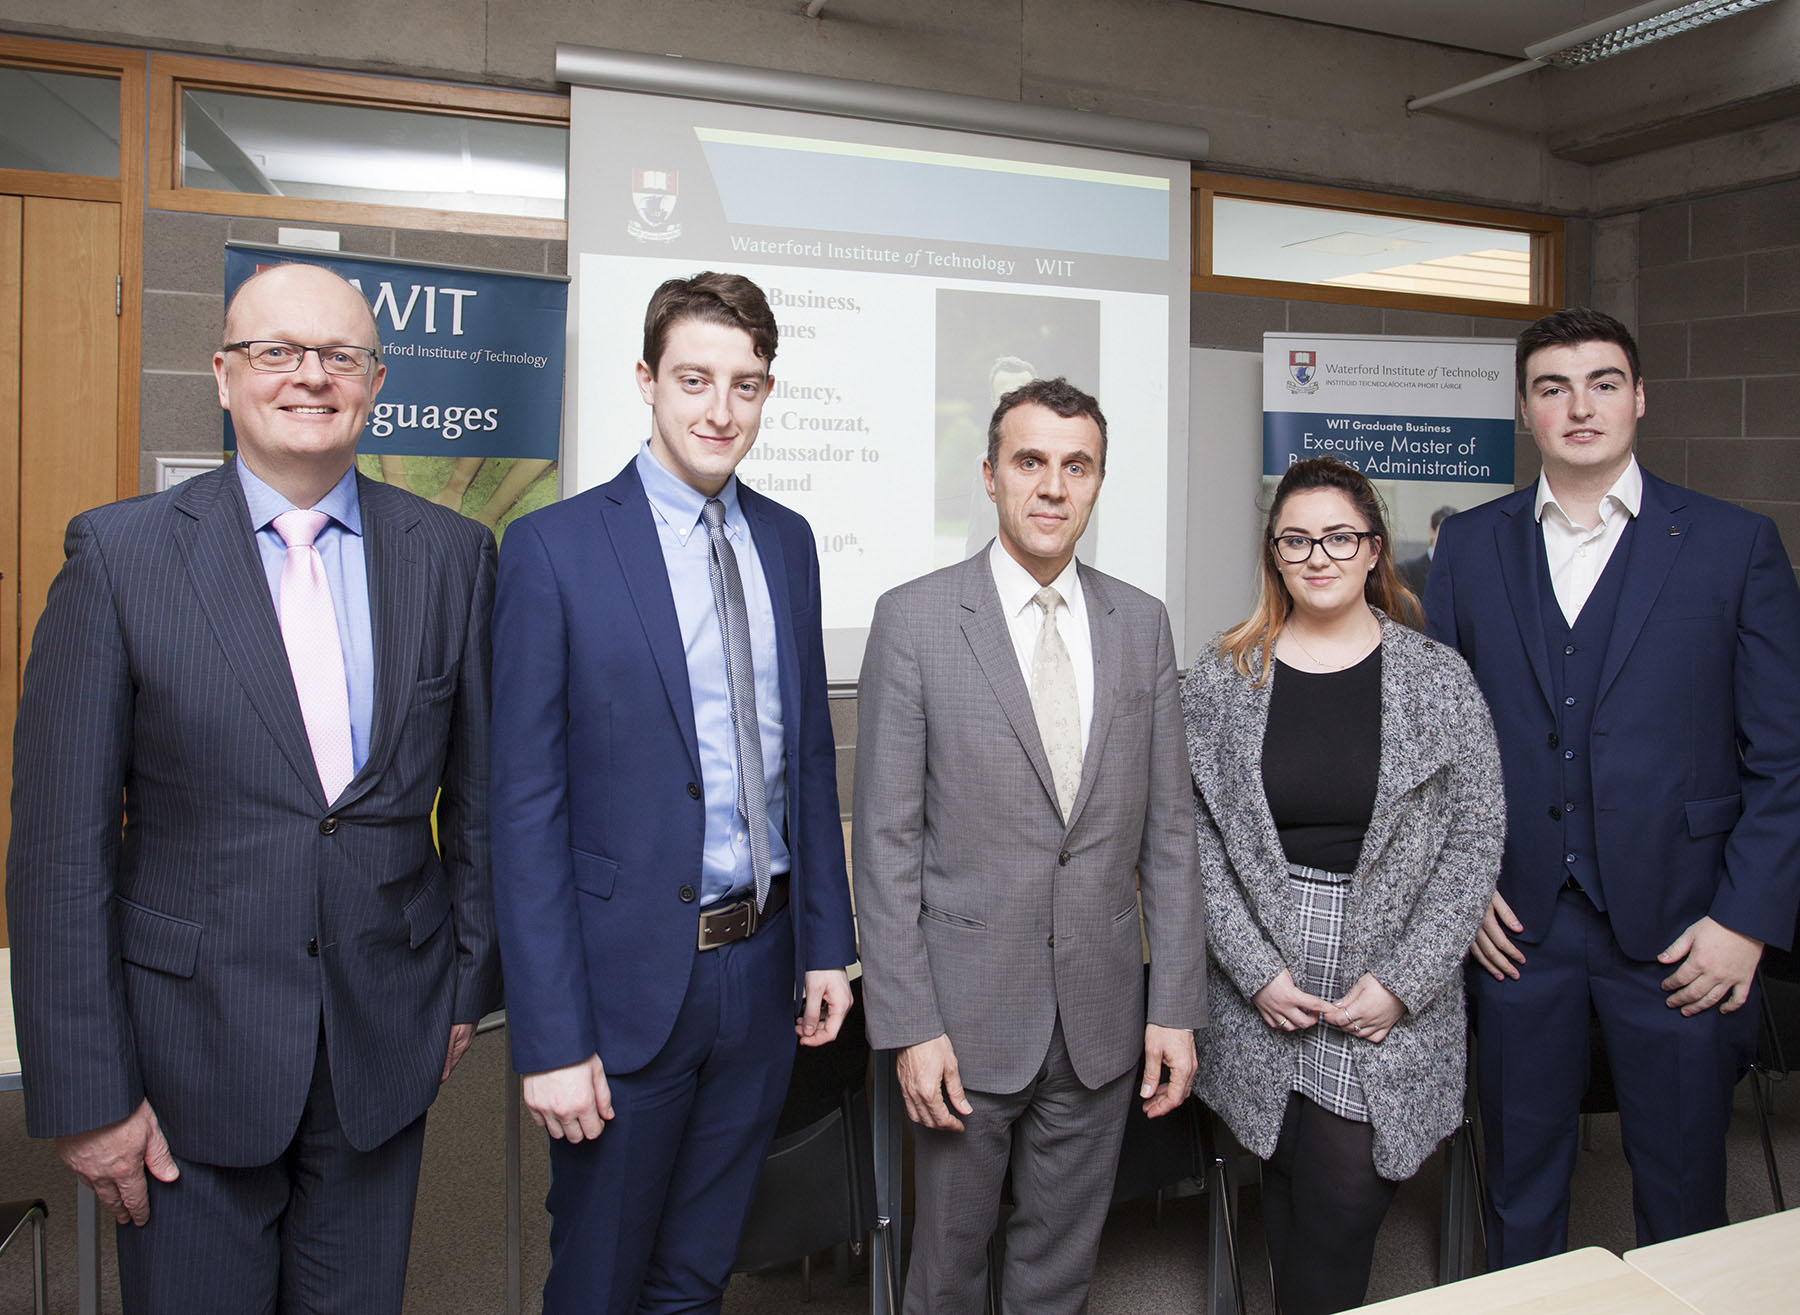 Pictured is the French Ambassador to Ireland, His Excellency Stephane Crouzat, with staff and students